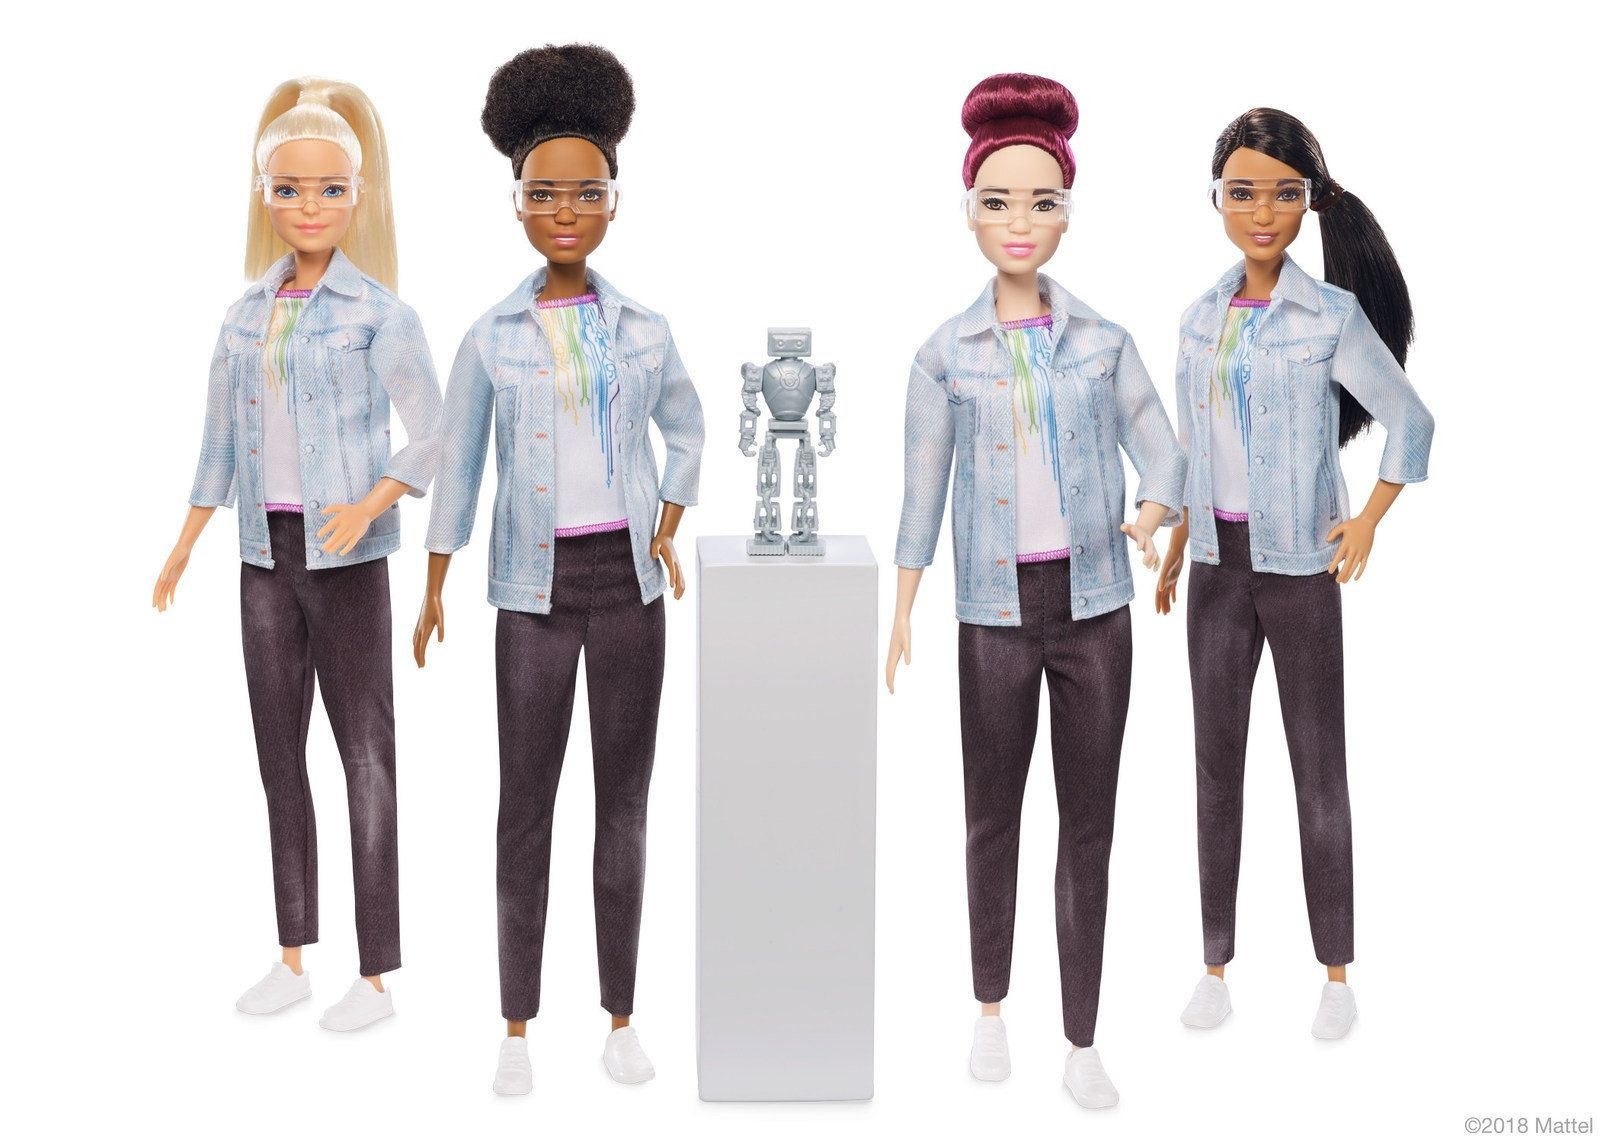 Today, the Barbie� brand launches Robotics Engineer Barbie, a doll designed to pique girls� interest in STEM and shine a light on an underrepresented career field for women. (PRNewsfoto/Mattel, Inc.)